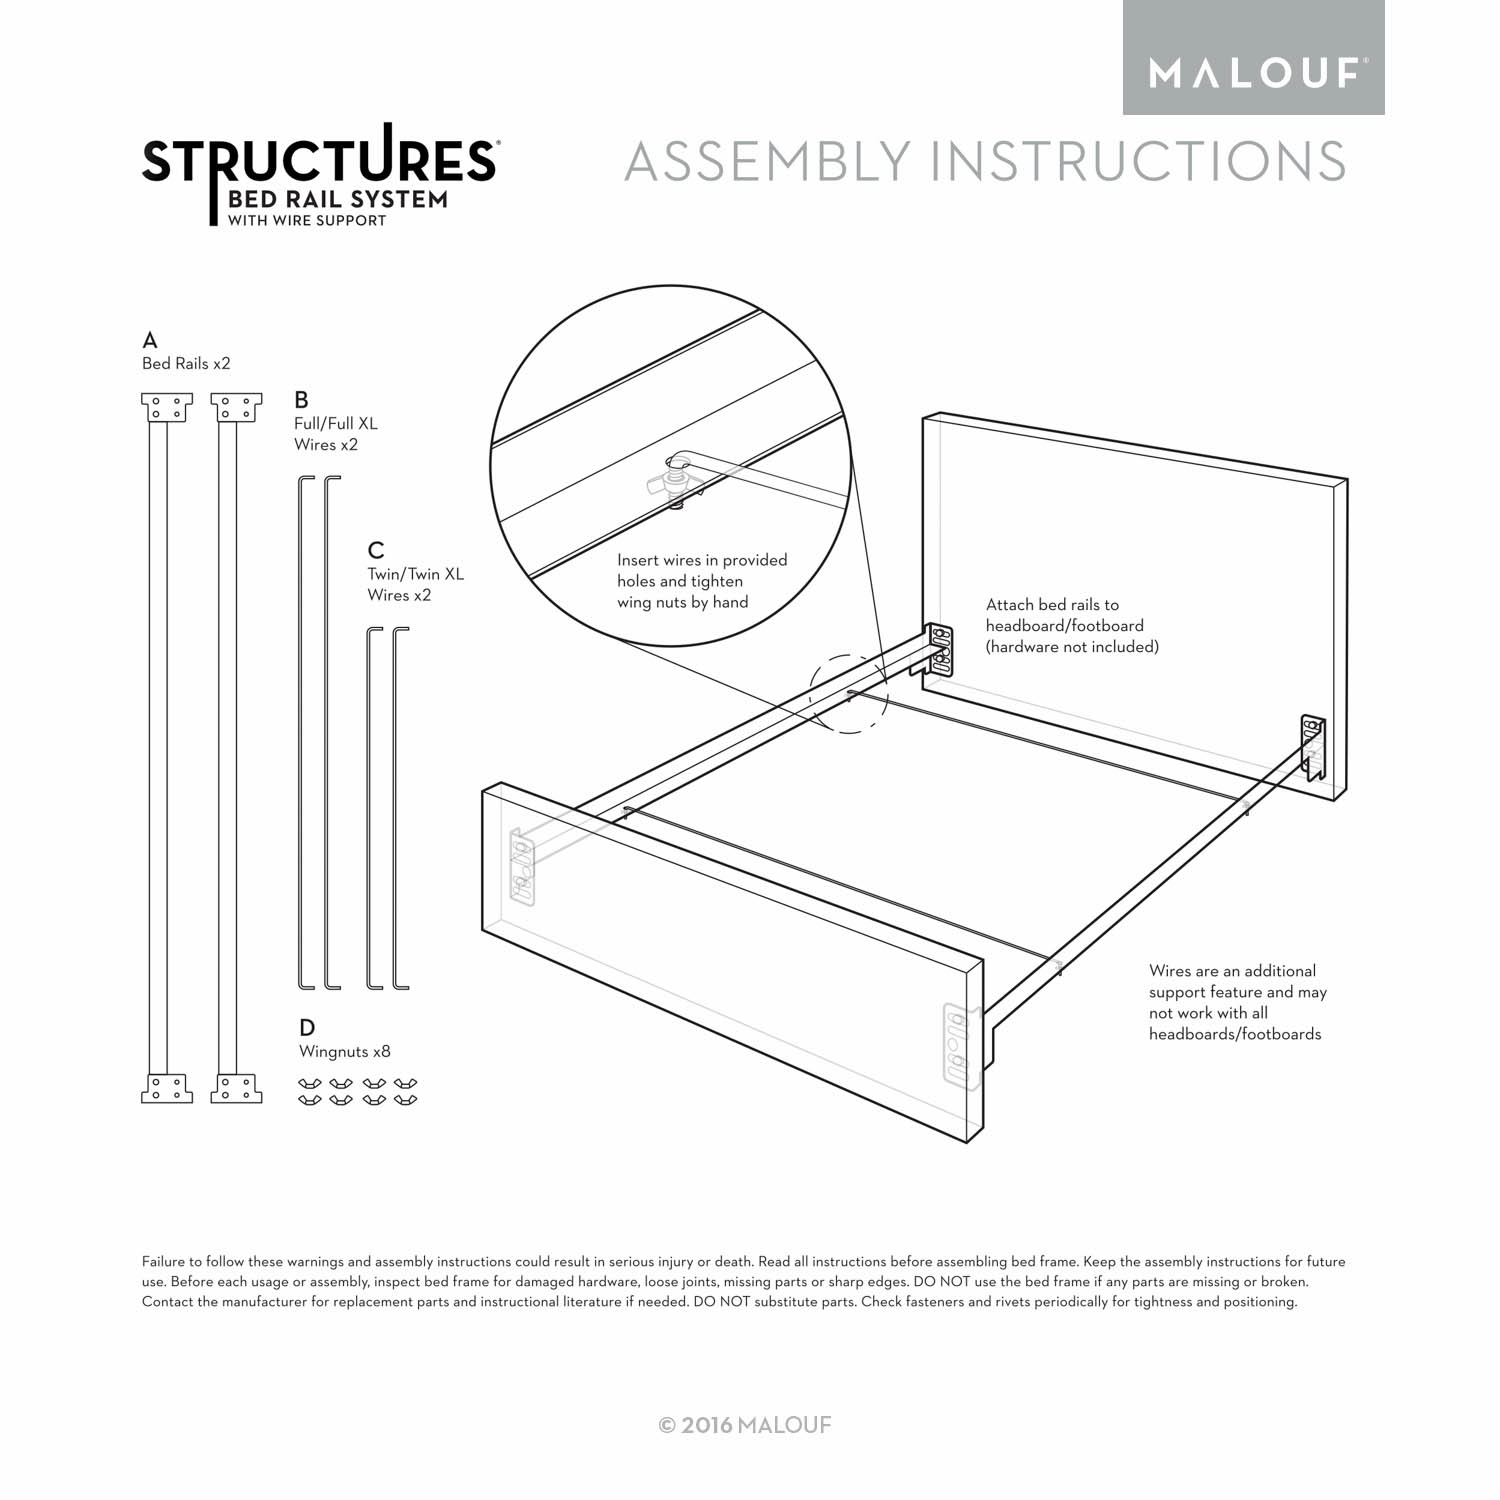 Structures Bolt On Bed Rails With Wire Support System X8 Wiring Diagram